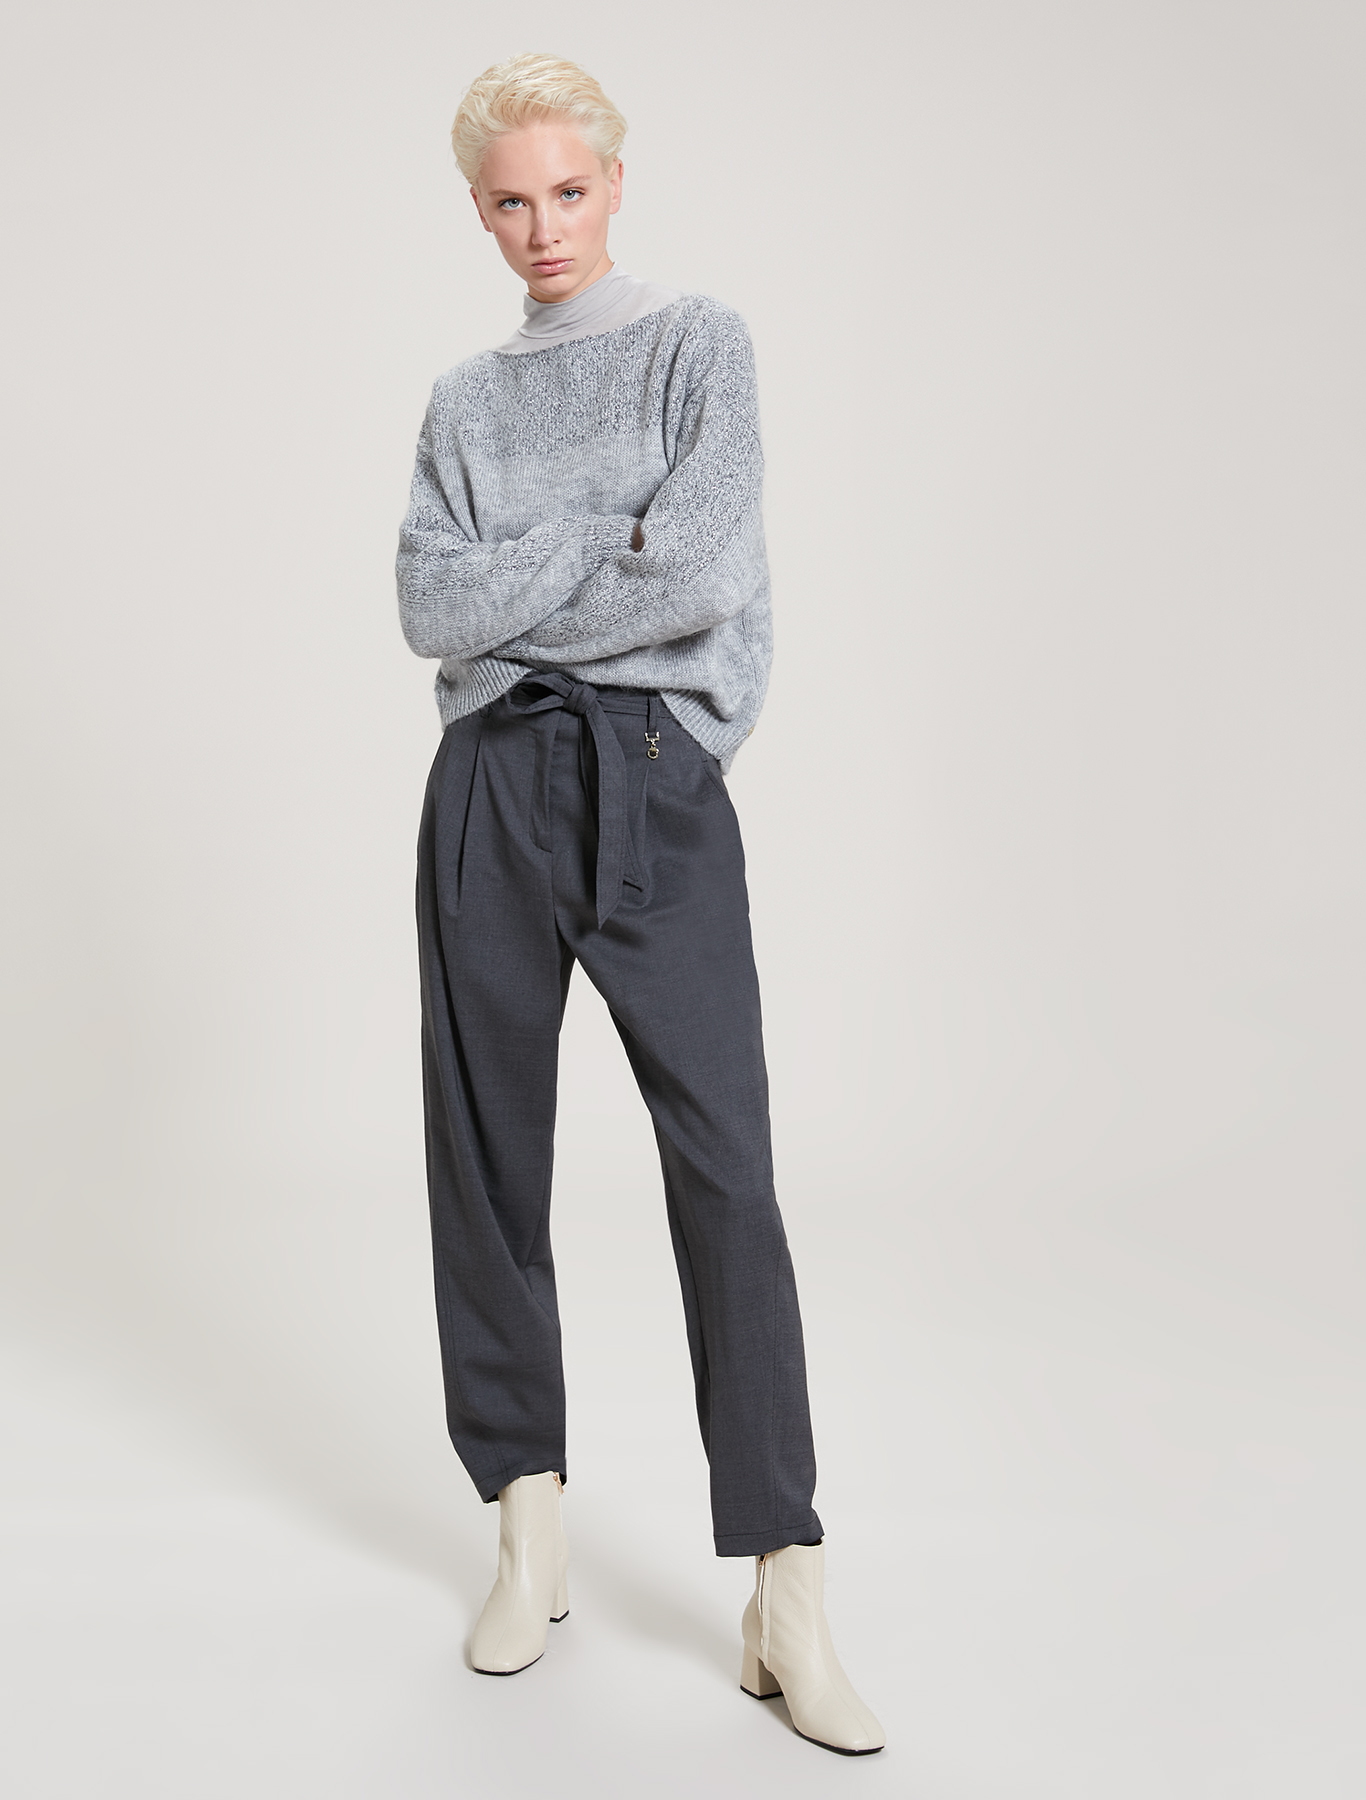 Modal and cashmere T-shirt - pearl grey - pennyblack